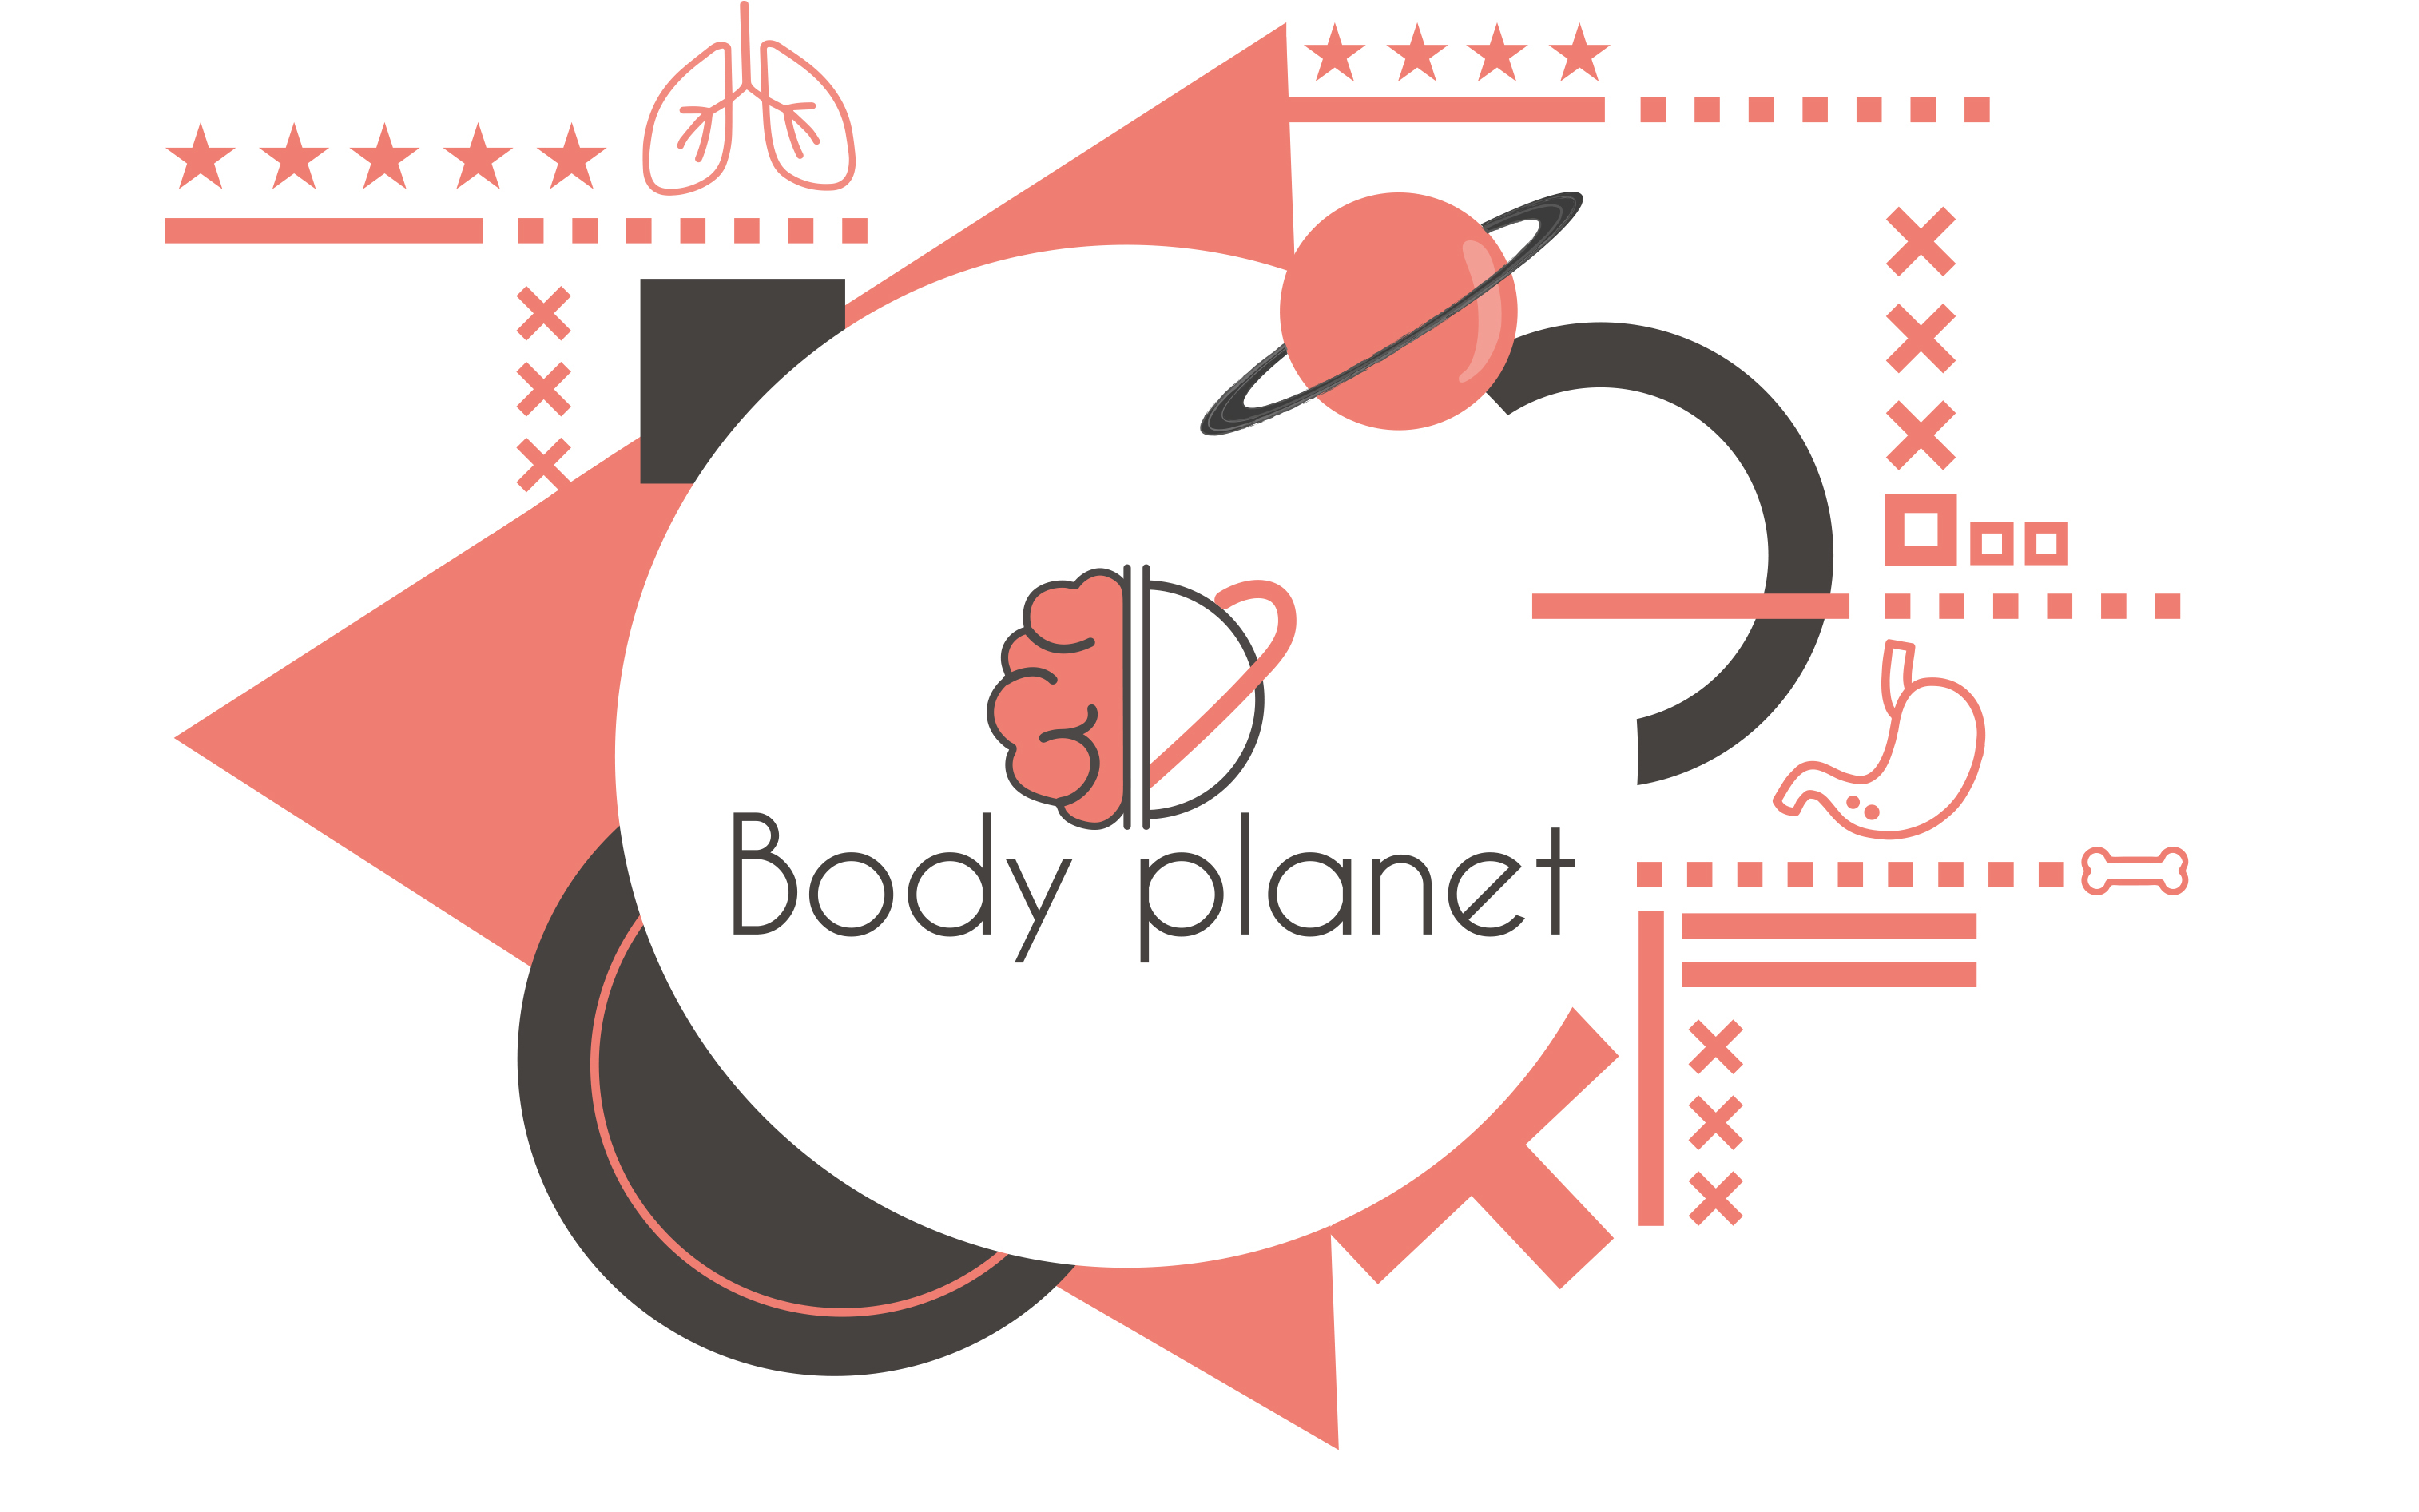 Body planet aula material educativo